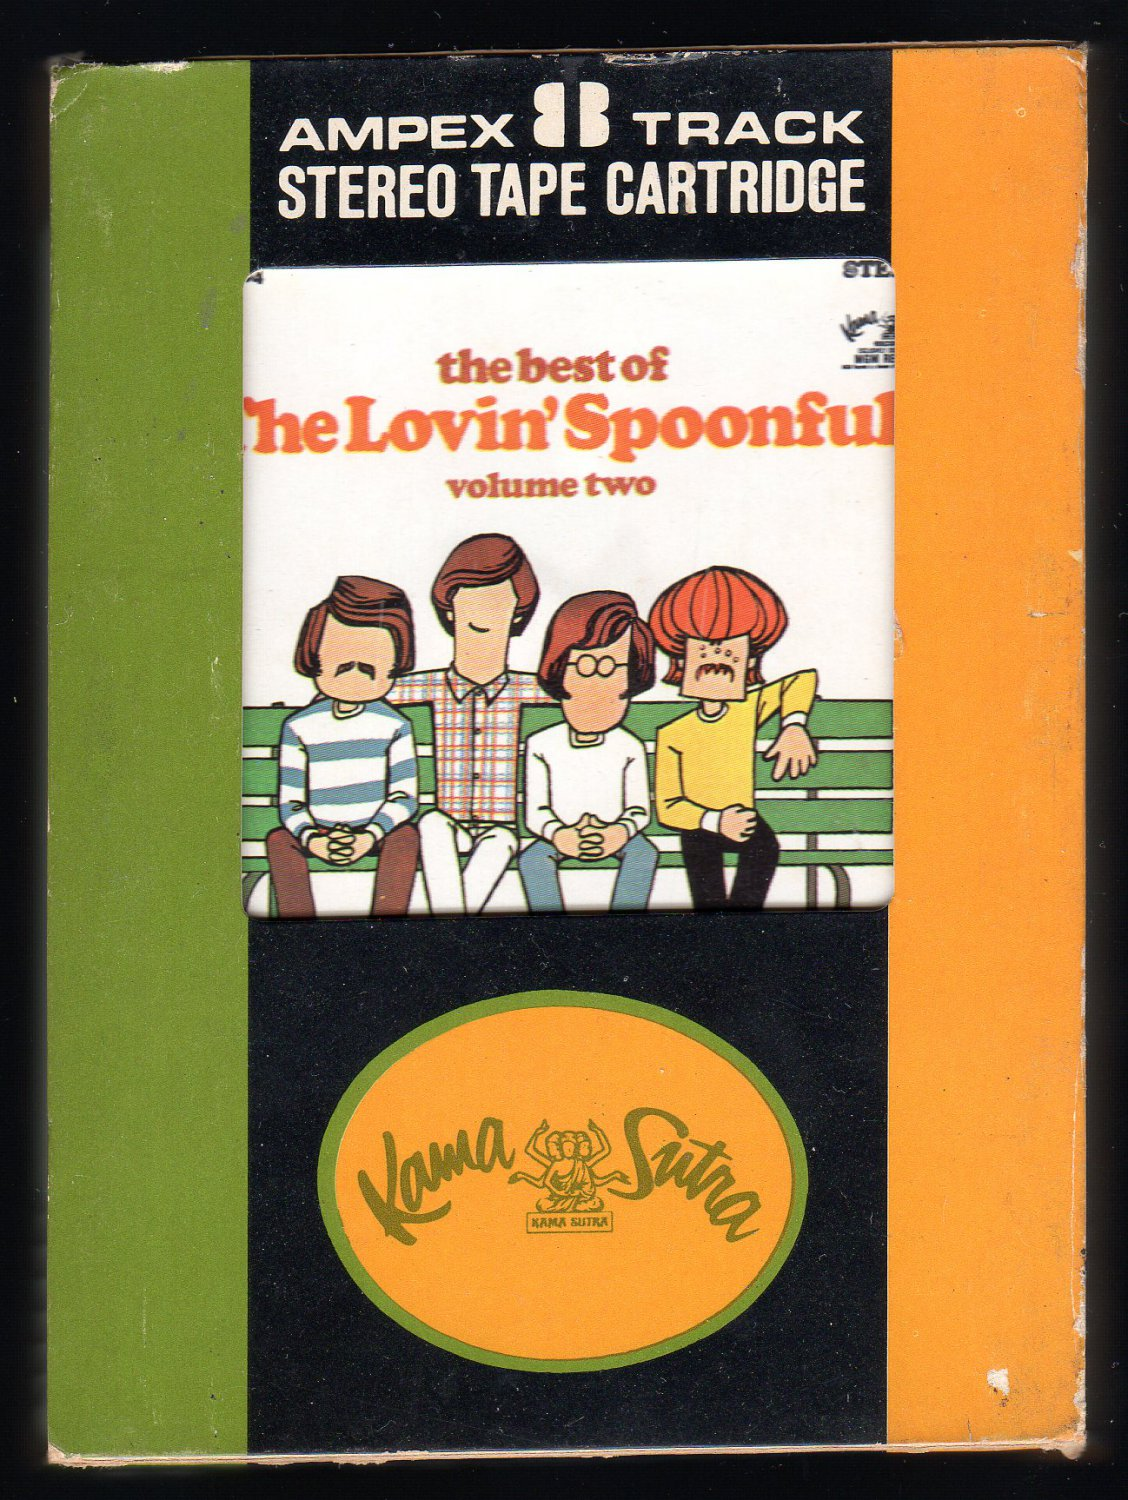 Lovin' Spoonful - The Best Of The Lovin' Spoonful Volume Two 1968 AMPEX KAMASUTRA A45 8-TRACK TAPE